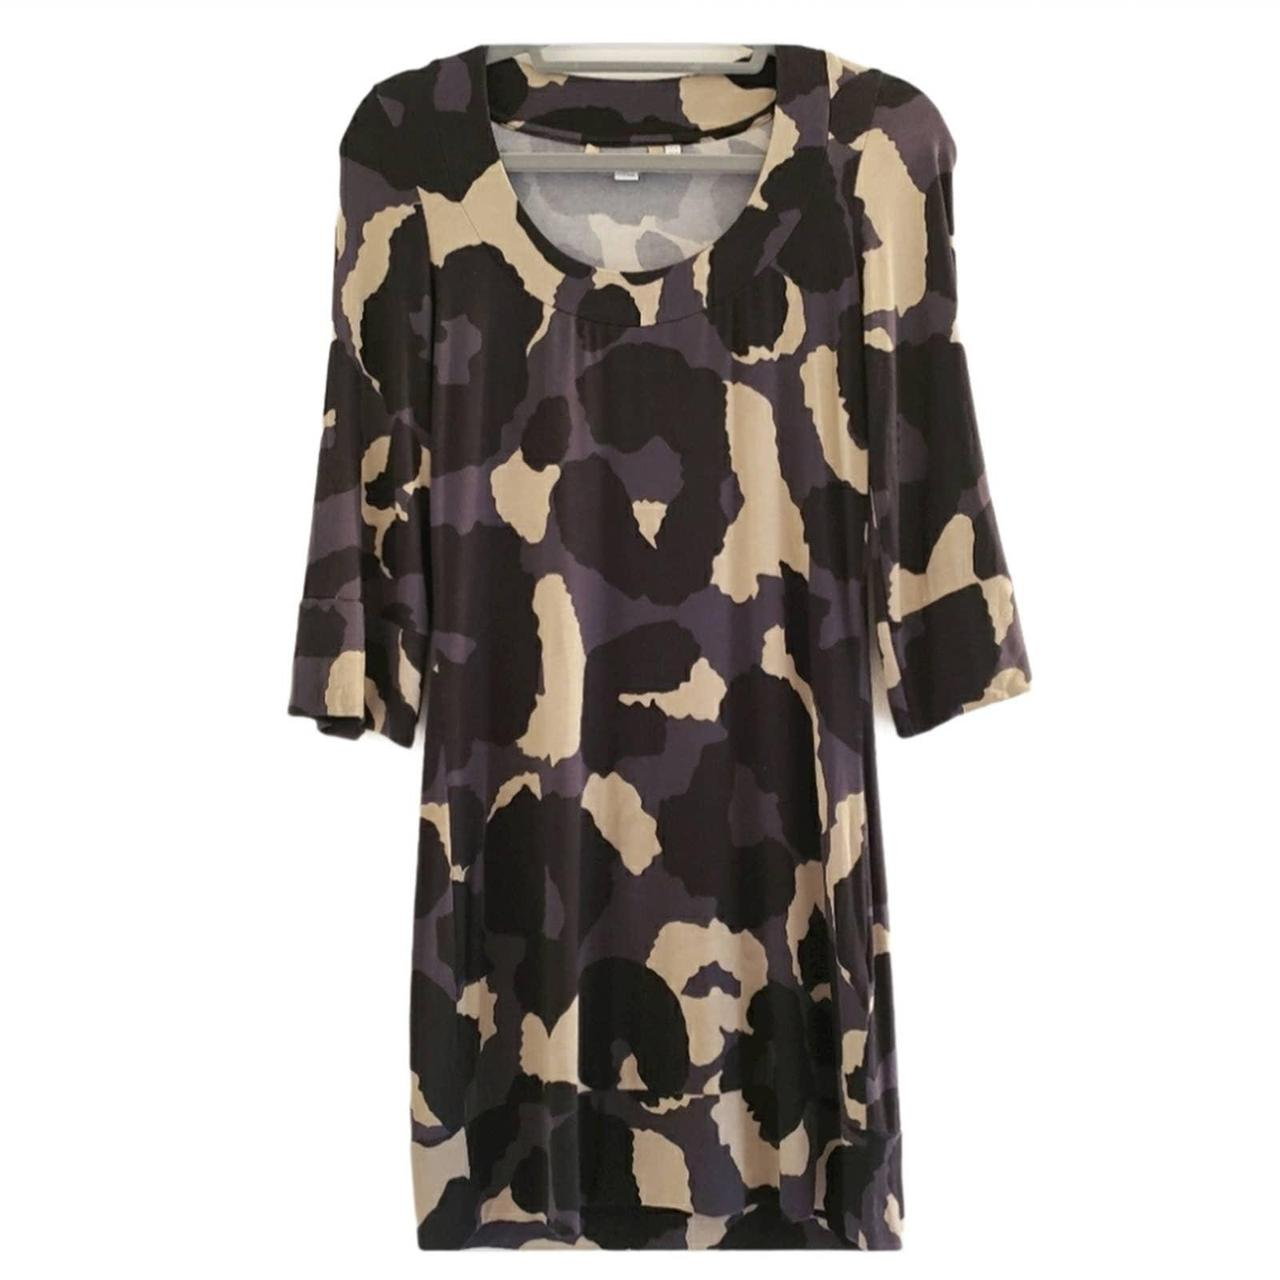 Product Image 1 - Boden geometric camouflage t-shirt material